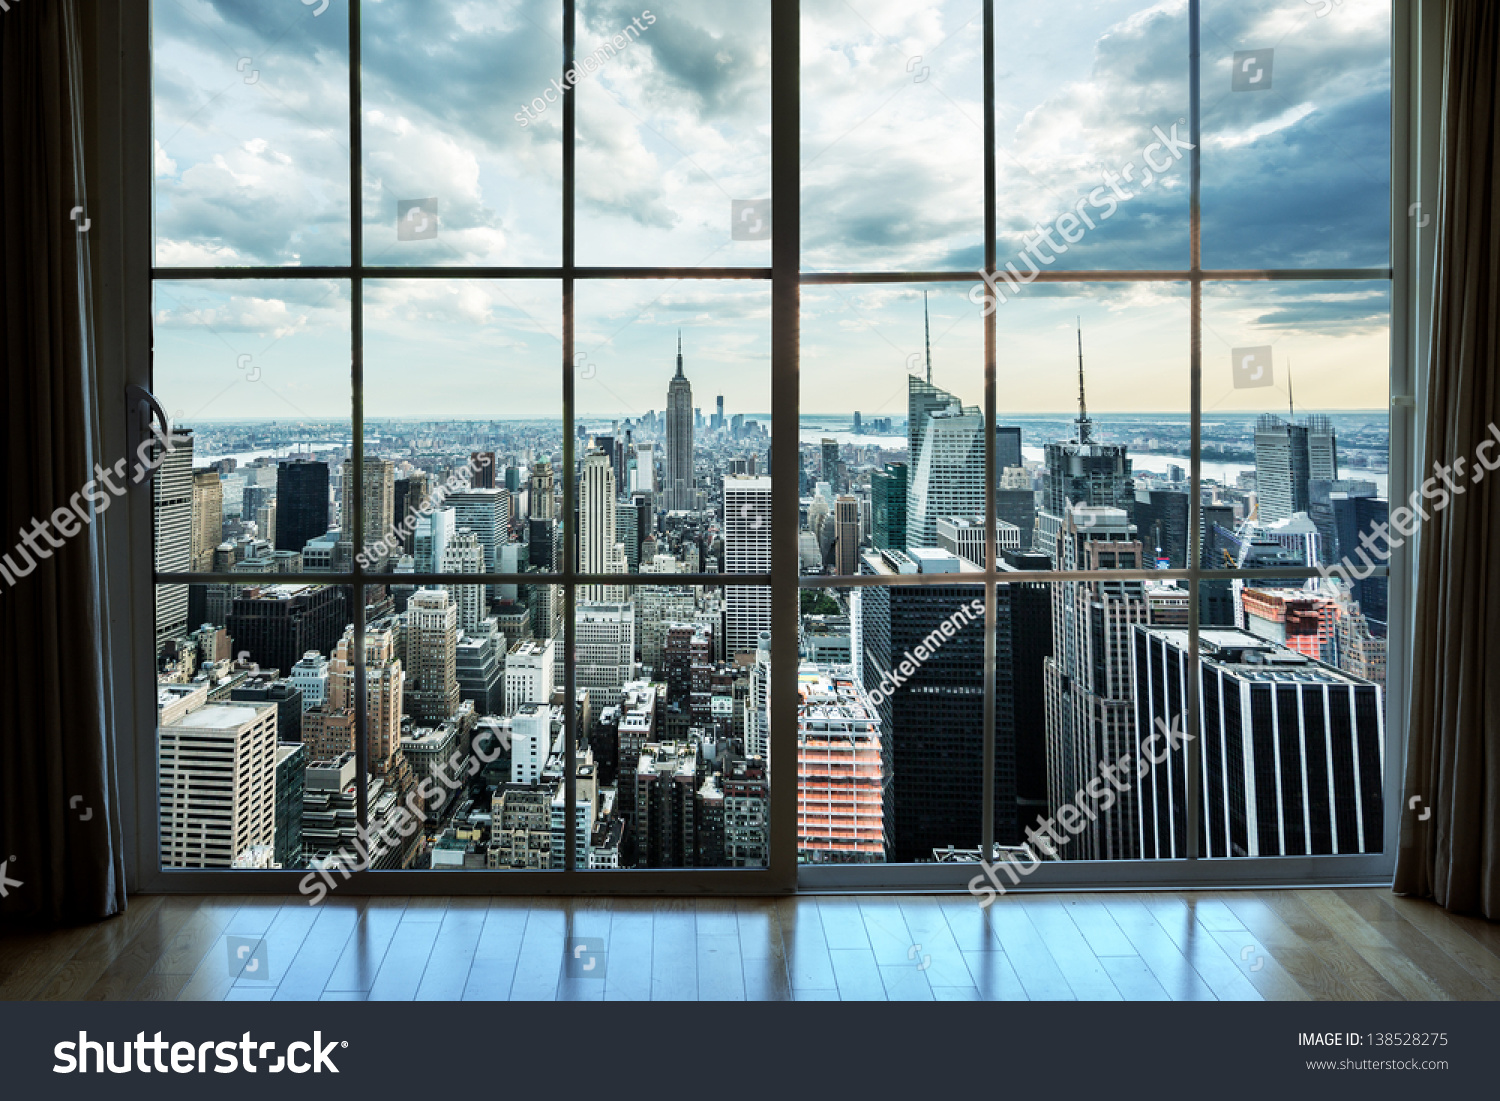 View Of Manhattan New York City Skyline Buildings From